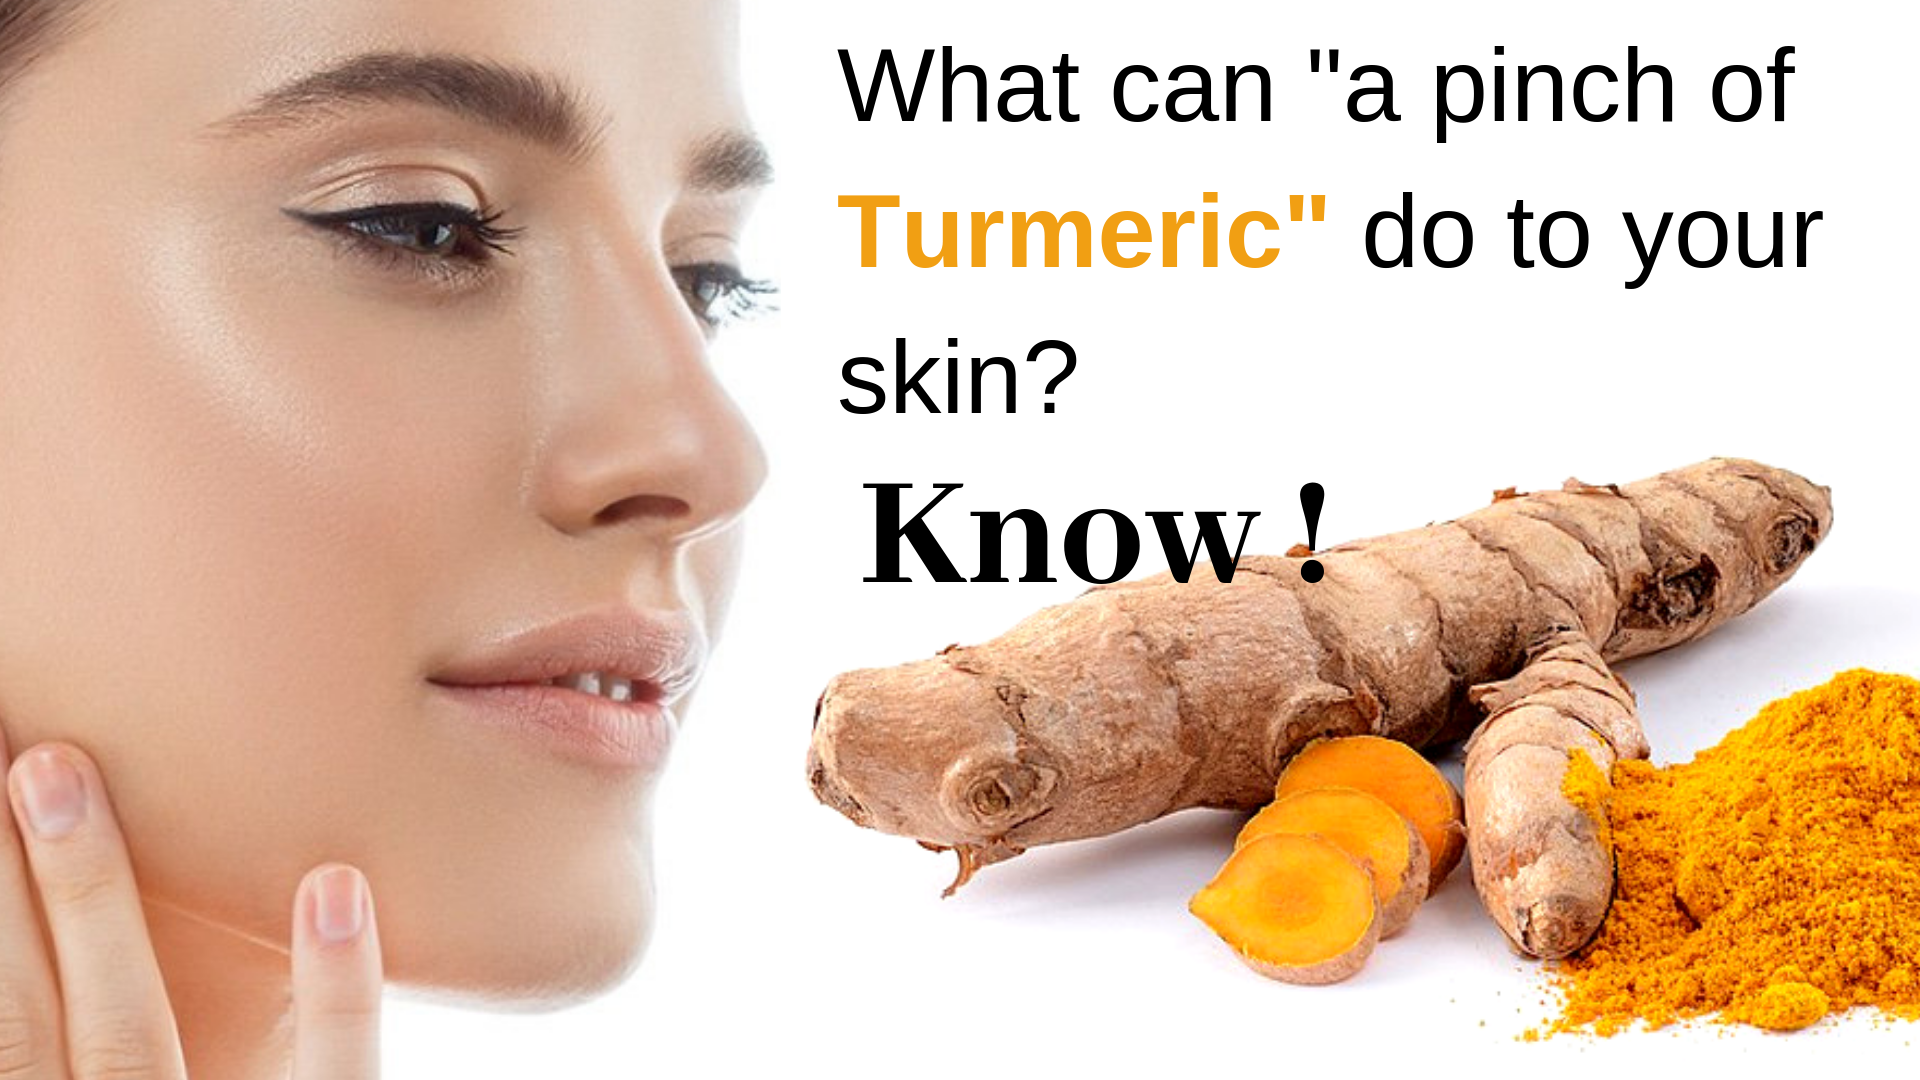 What a pinch of turmeric can do to your skin